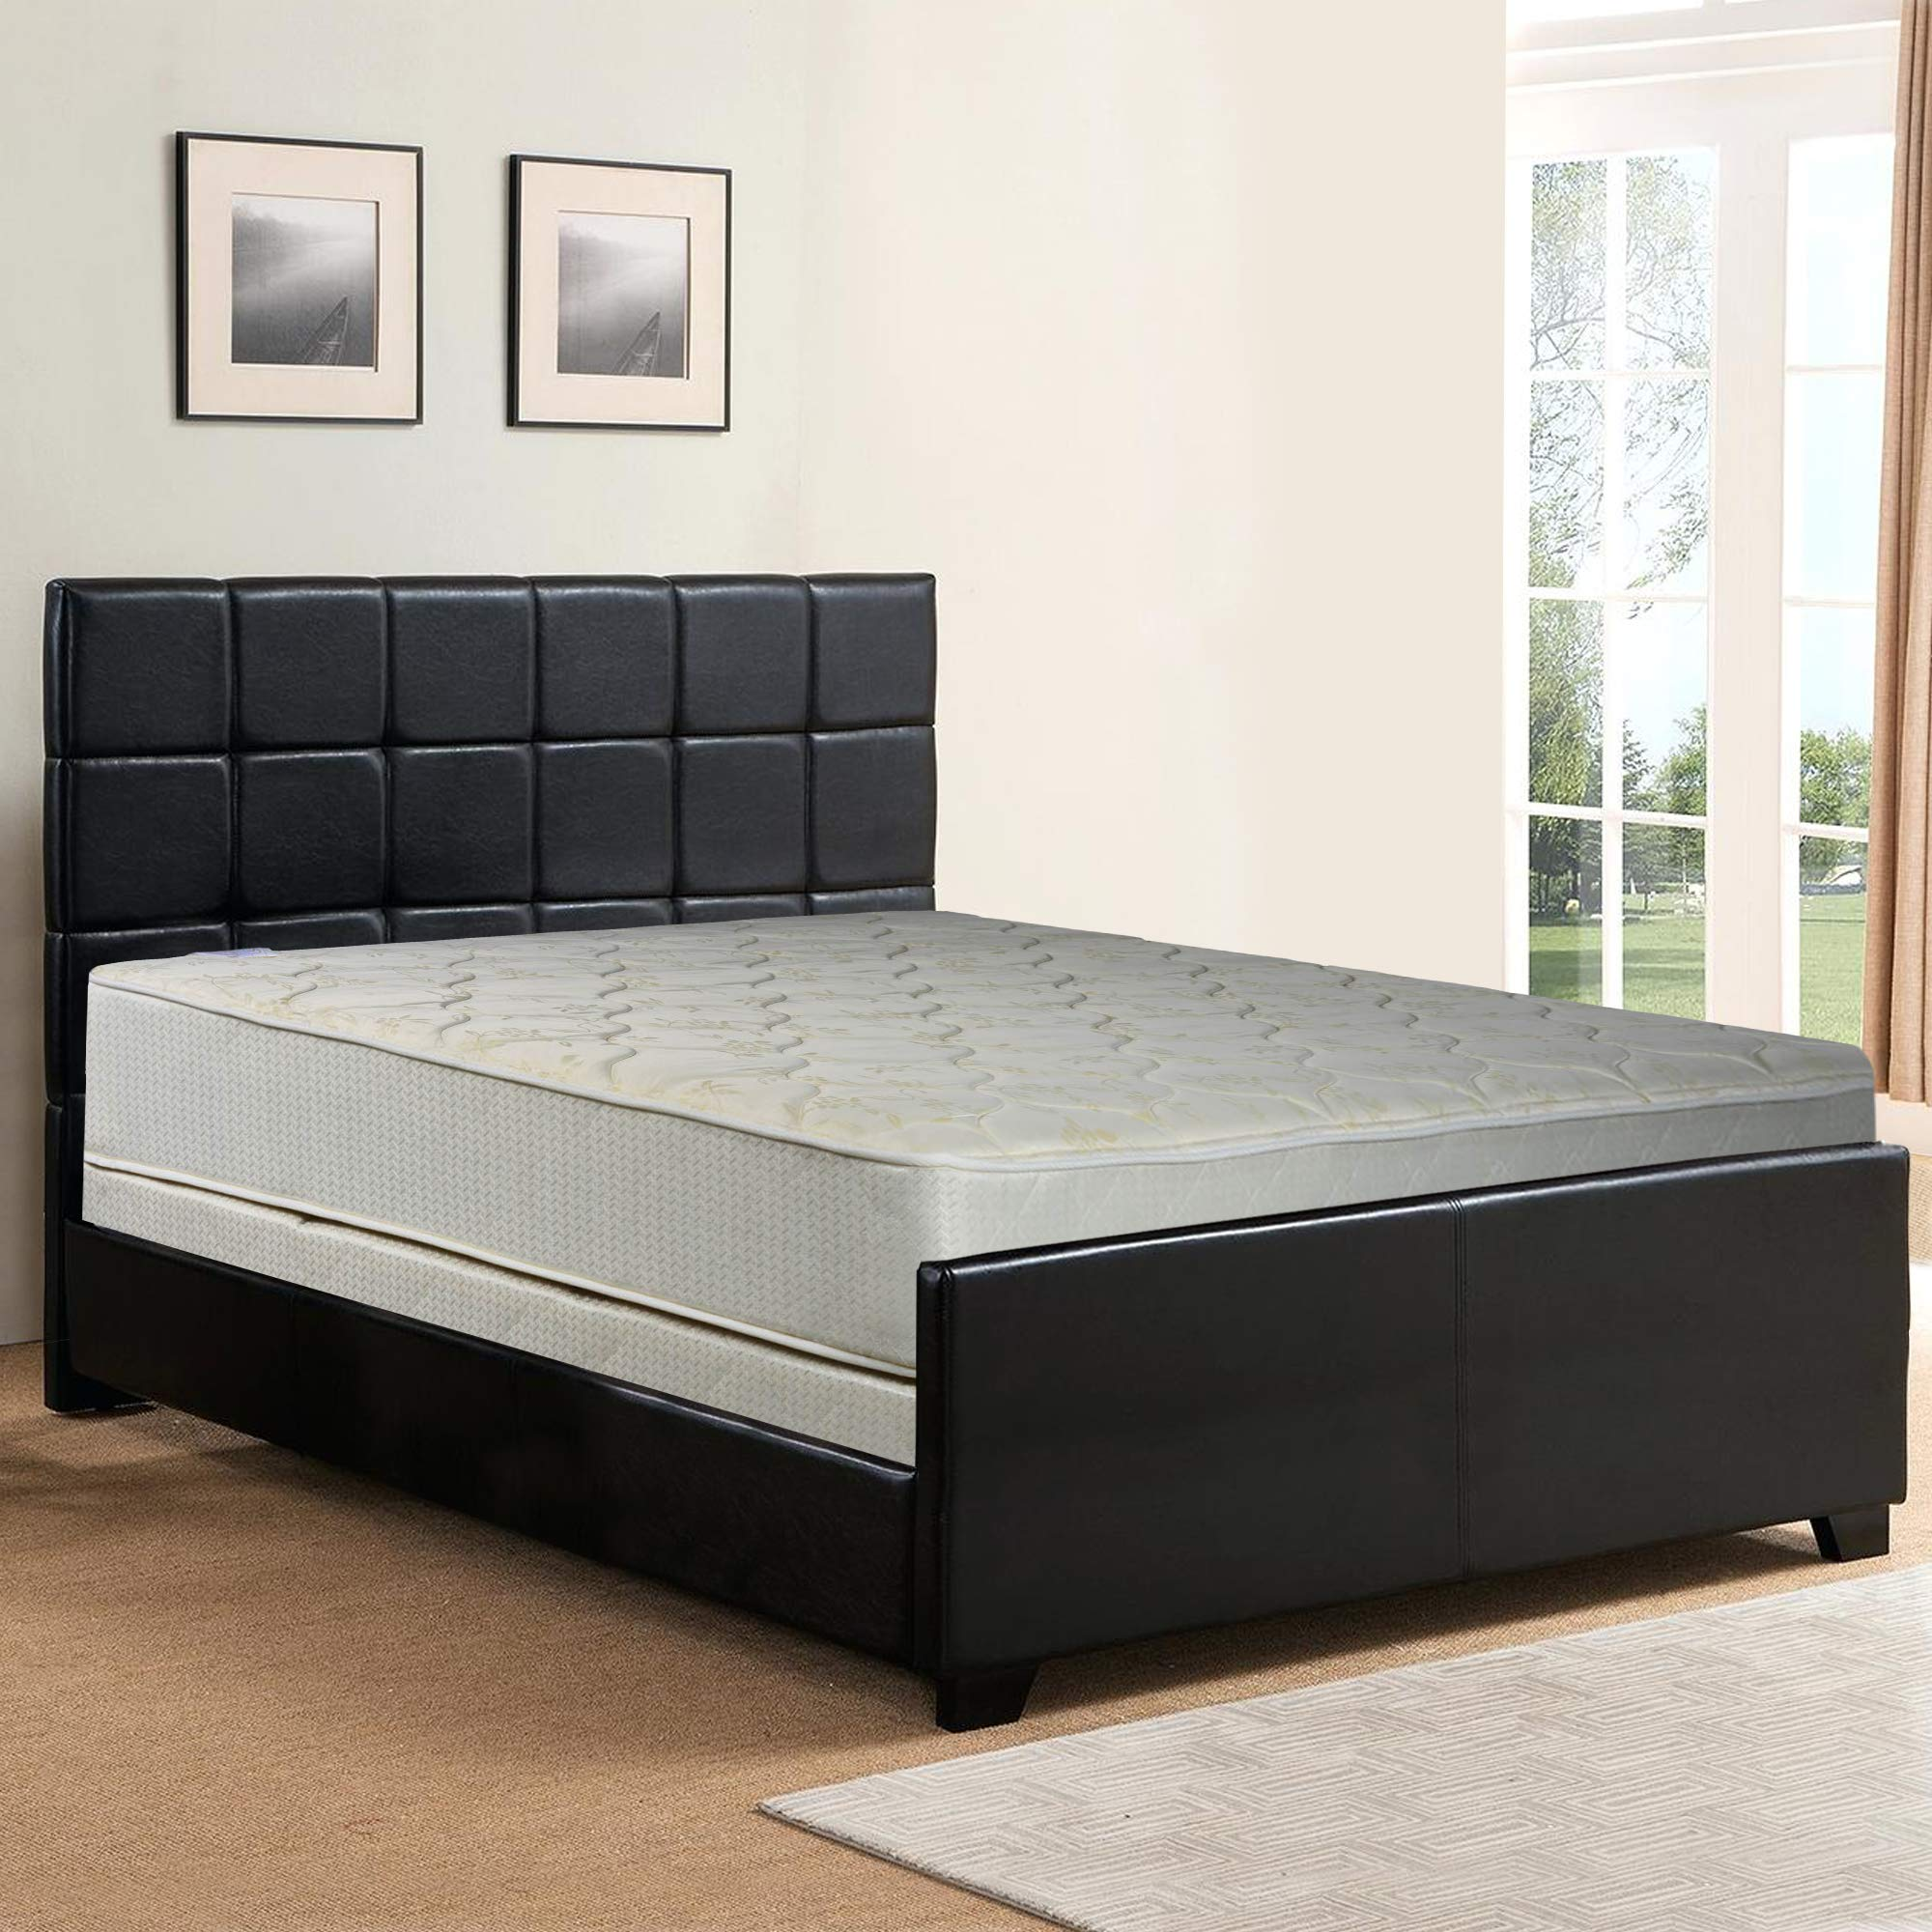 Spring Sleep, 8-inch Fully Assembled Split Box Spring/Foundation for Mattress, Splendor Collection, Queen Size